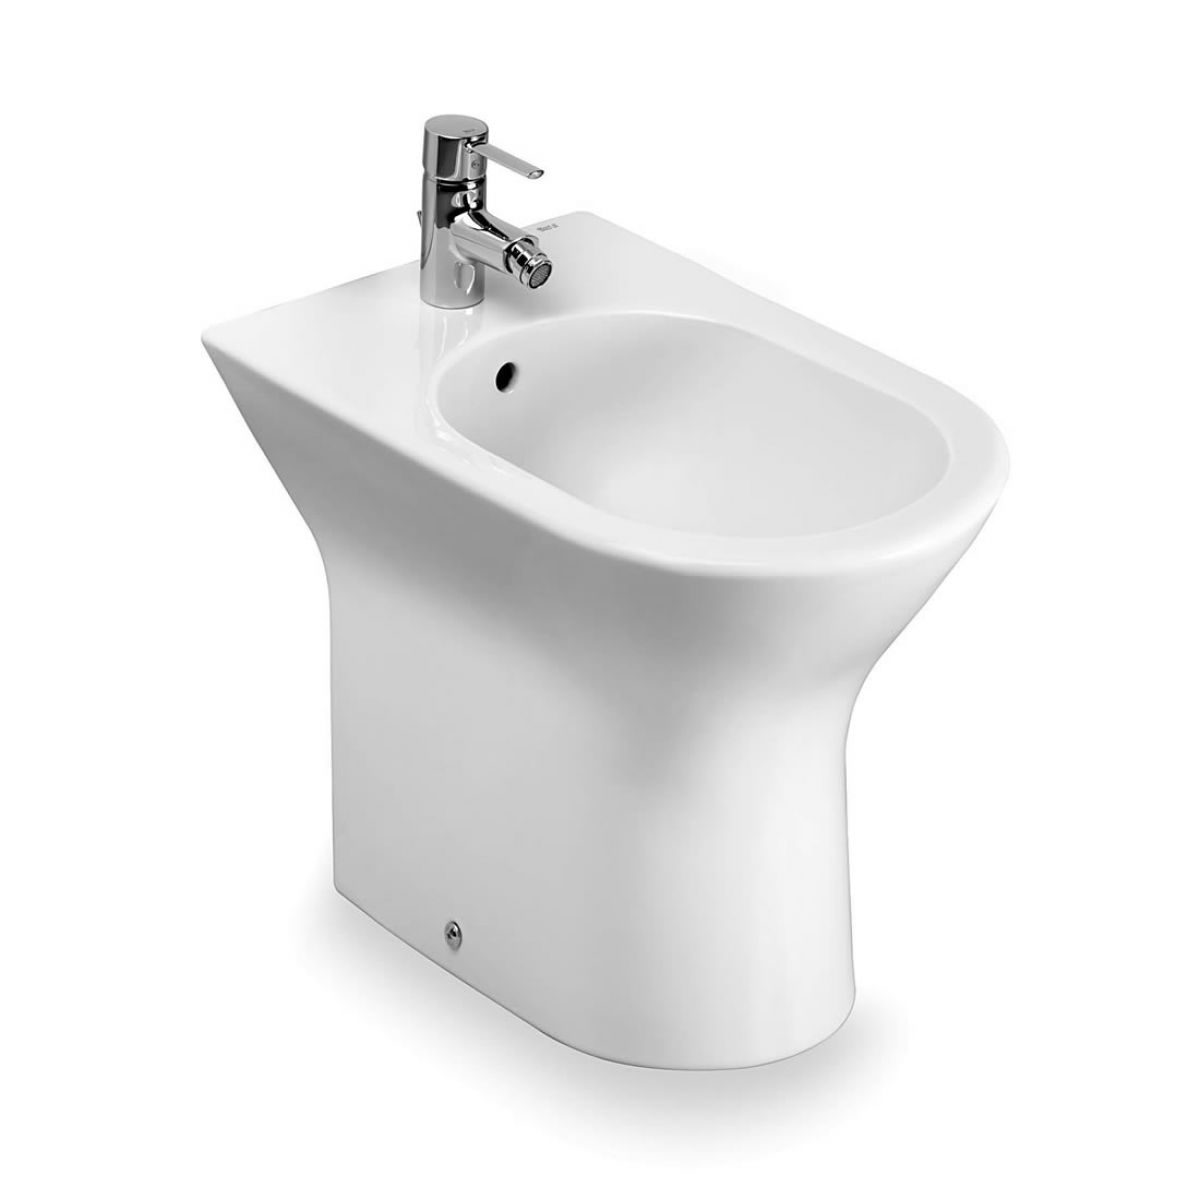 roca nexo floorstanding bidet uk bathrooms. Black Bedroom Furniture Sets. Home Design Ideas